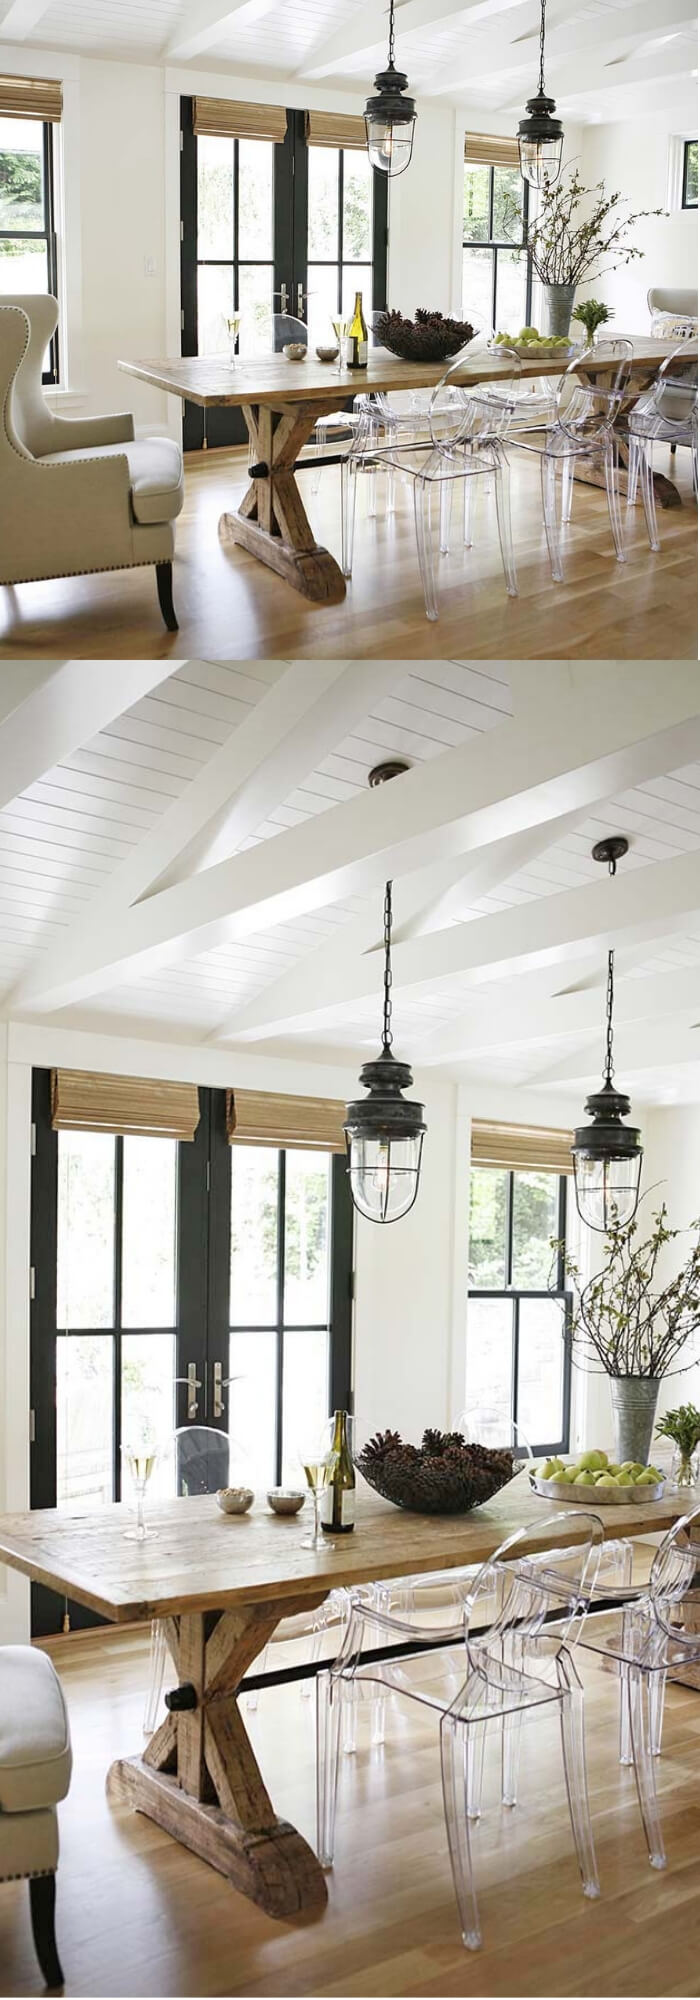 Farmhouse Lighting Designs & Ideas: Metal Pendant Lights